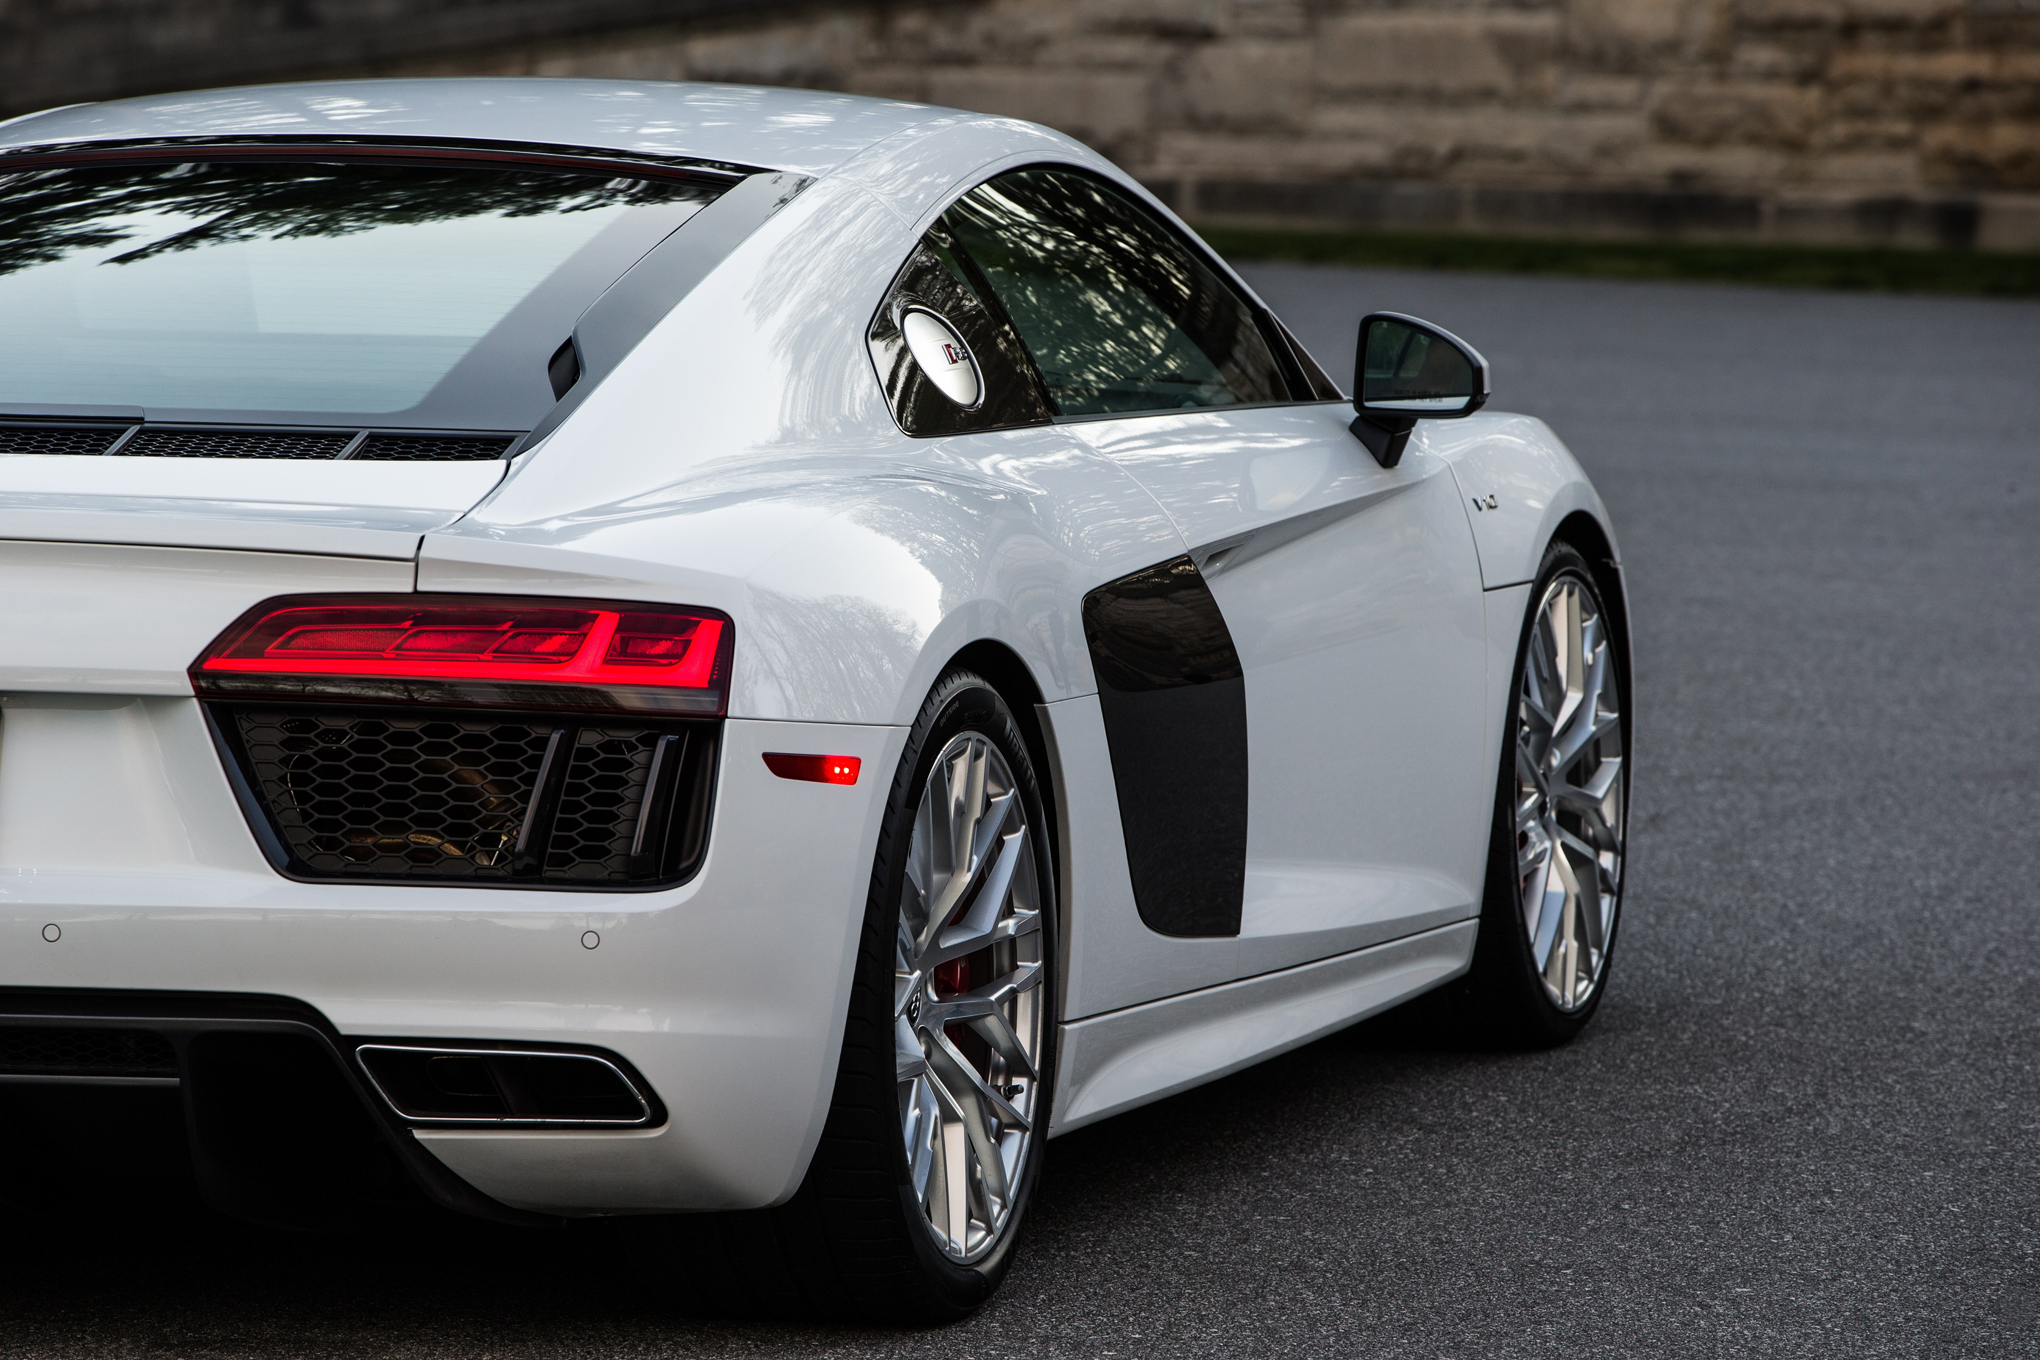 Audi R8 Wallpapers Vehicles Hq Audi R8 Pictures 4k